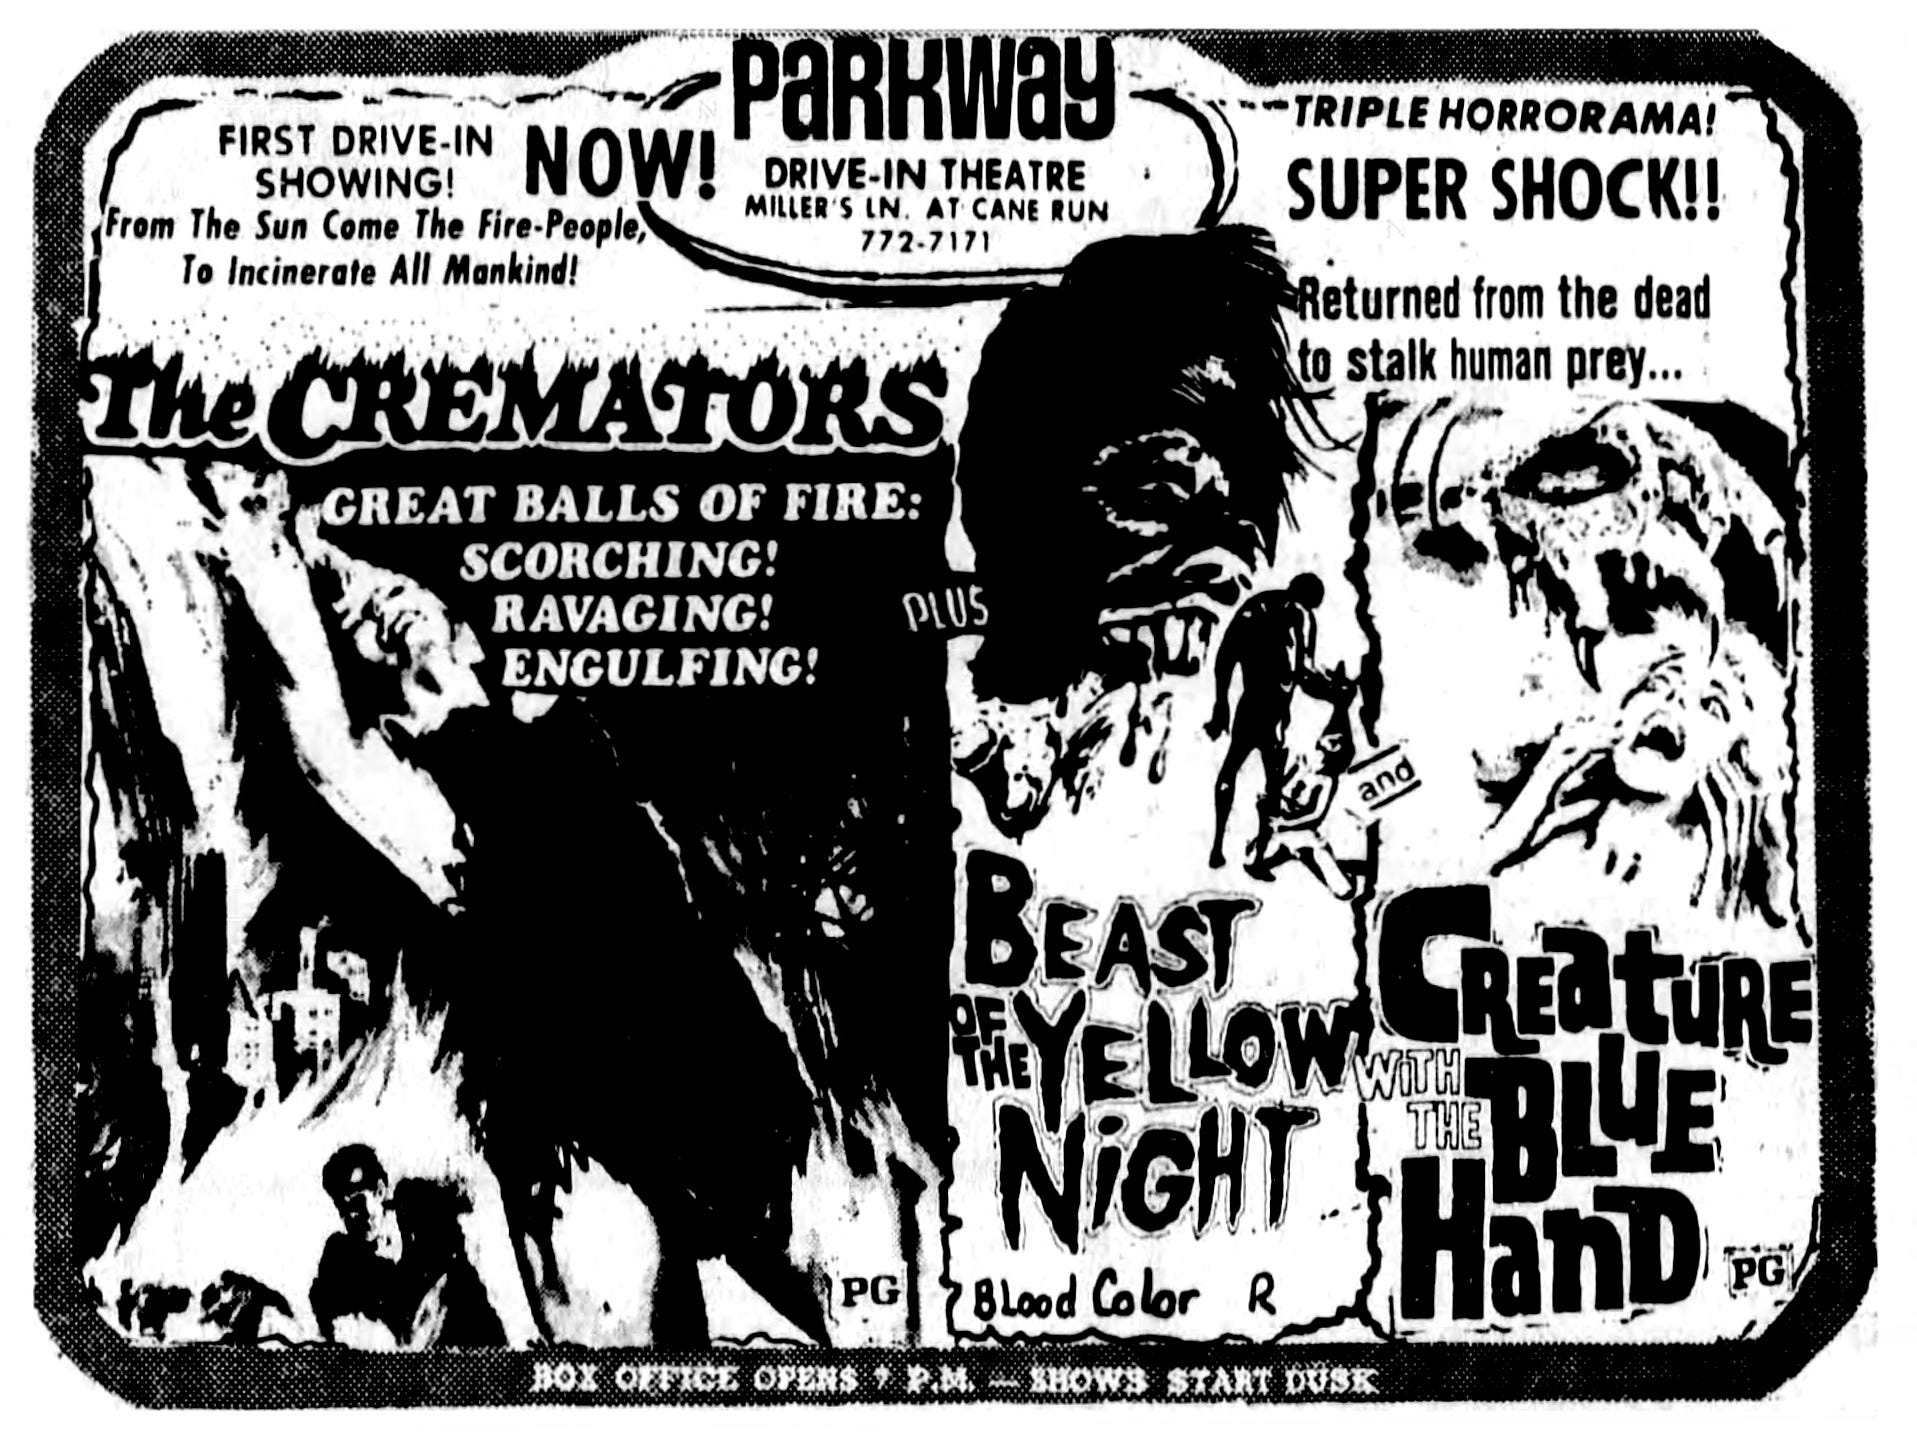 """""""The Cremators,"""" """"Beast of the Yellow Night"""" and """"Creature with the Blue Hand,"""" Friday, Sept. 15, 1972."""